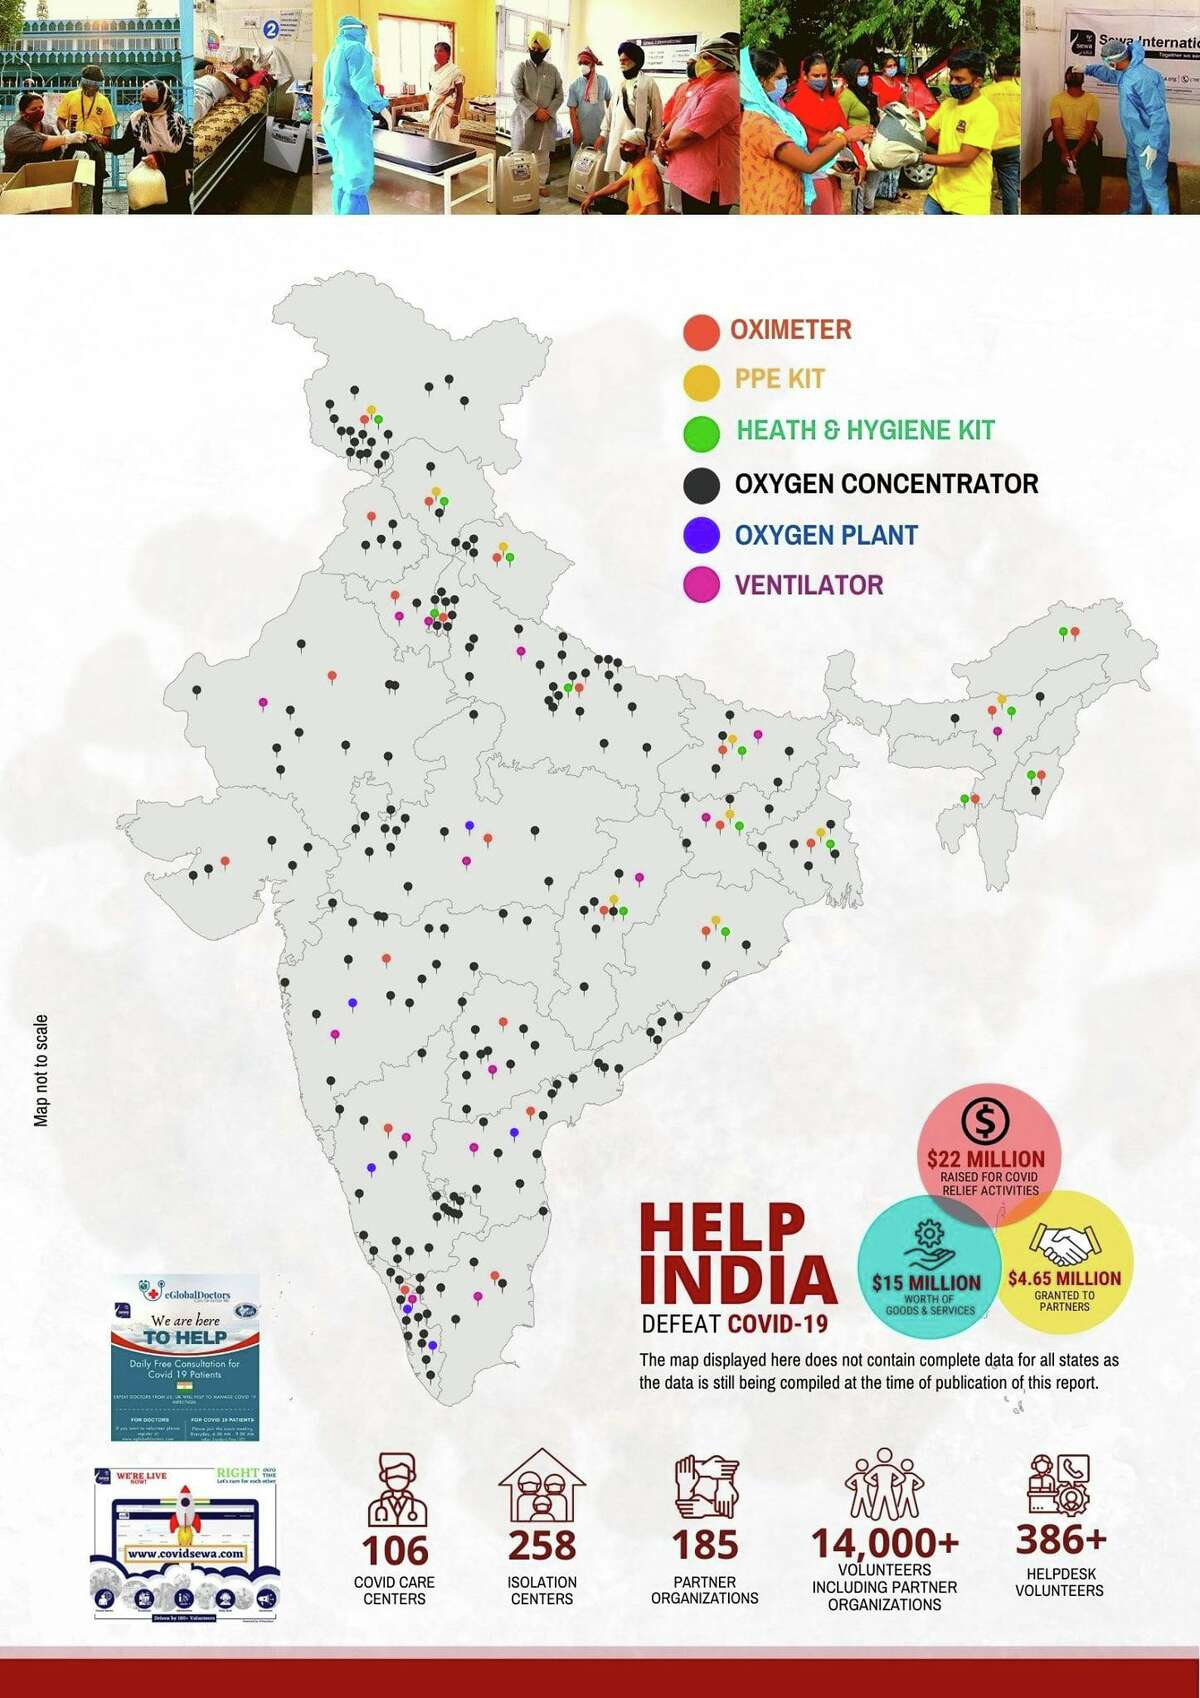 """Nonprofit Sewa International has distributed more than 5,990 oxygen concentrators and 177 ventilators to hospitals across India as part of its """"Help India Defeat COVID-19"""" campaign."""